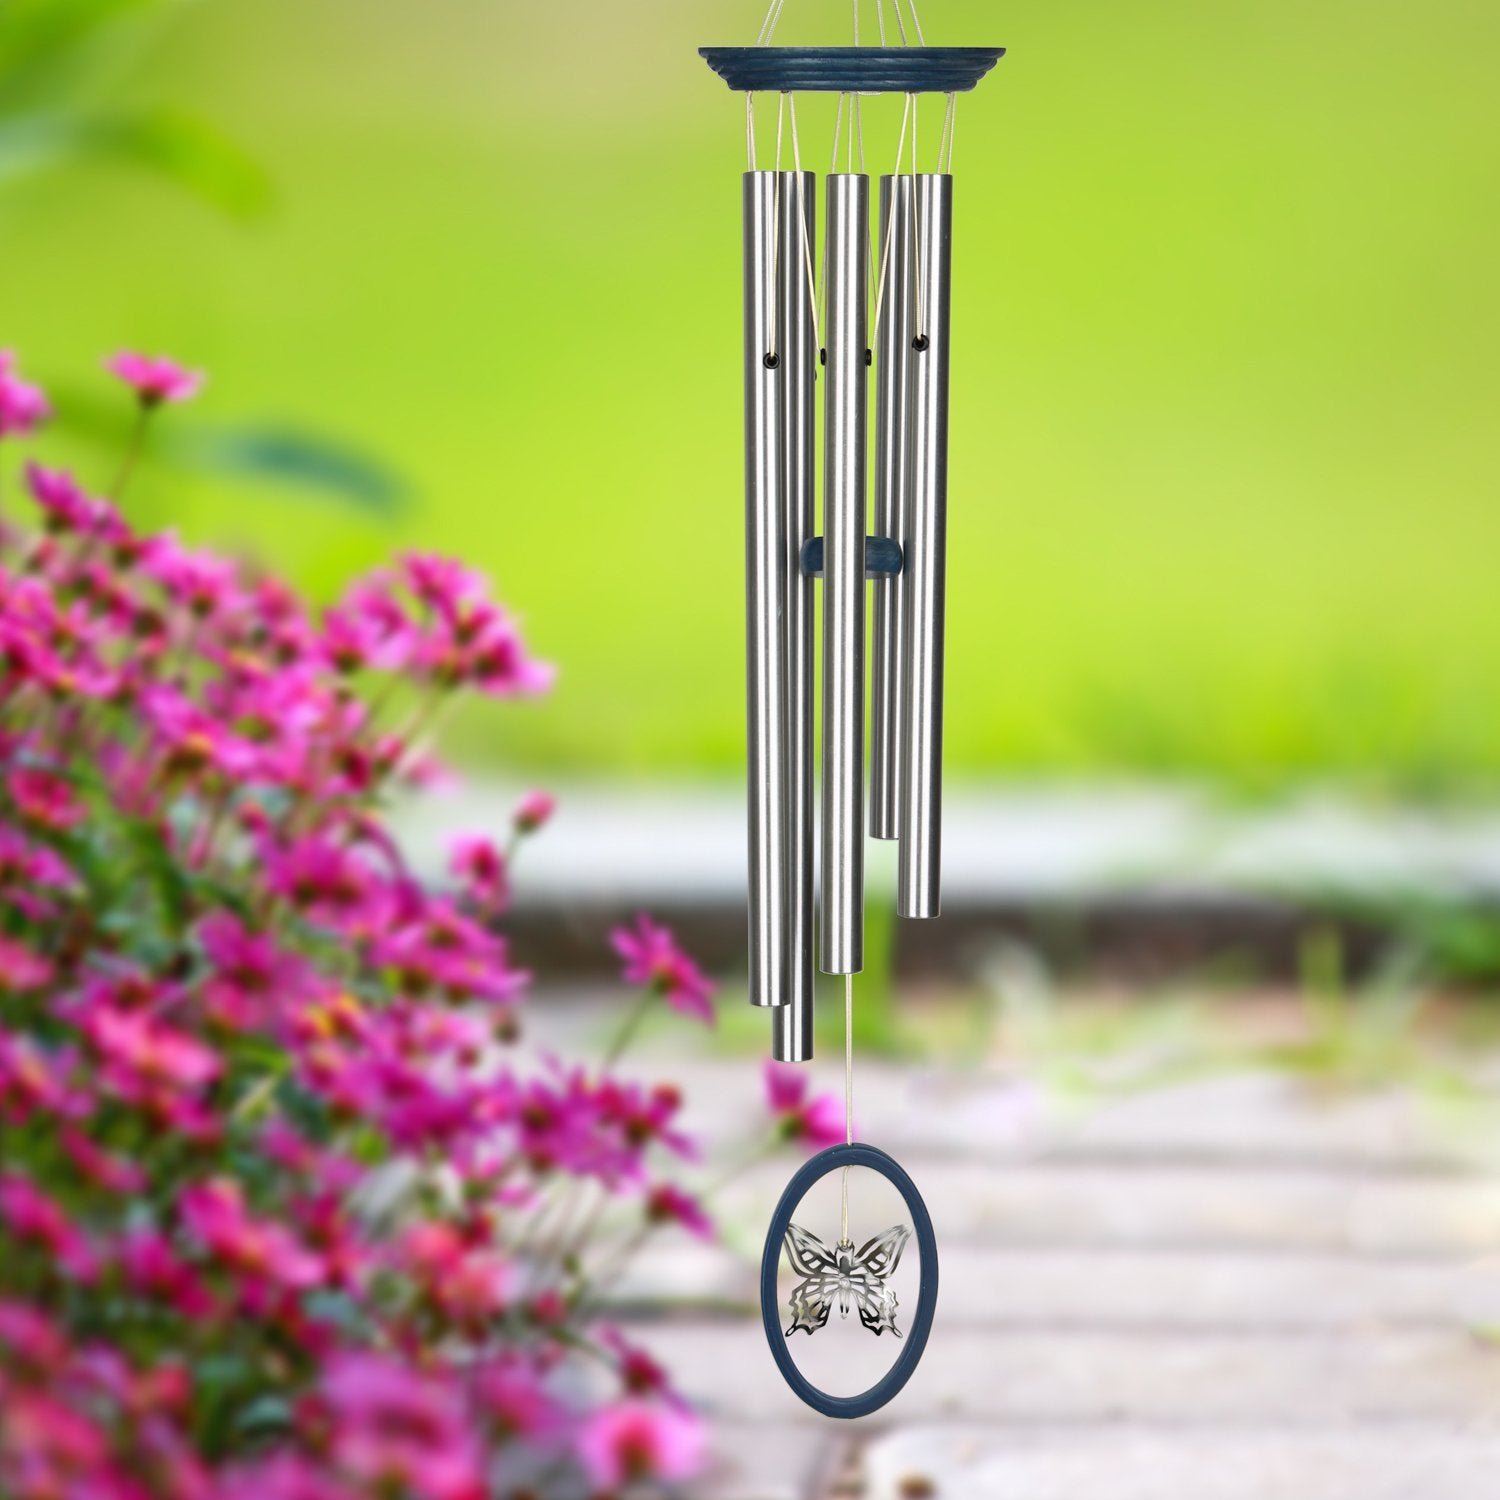 Wind Fantasy Chime - Butterfly lifestyle image